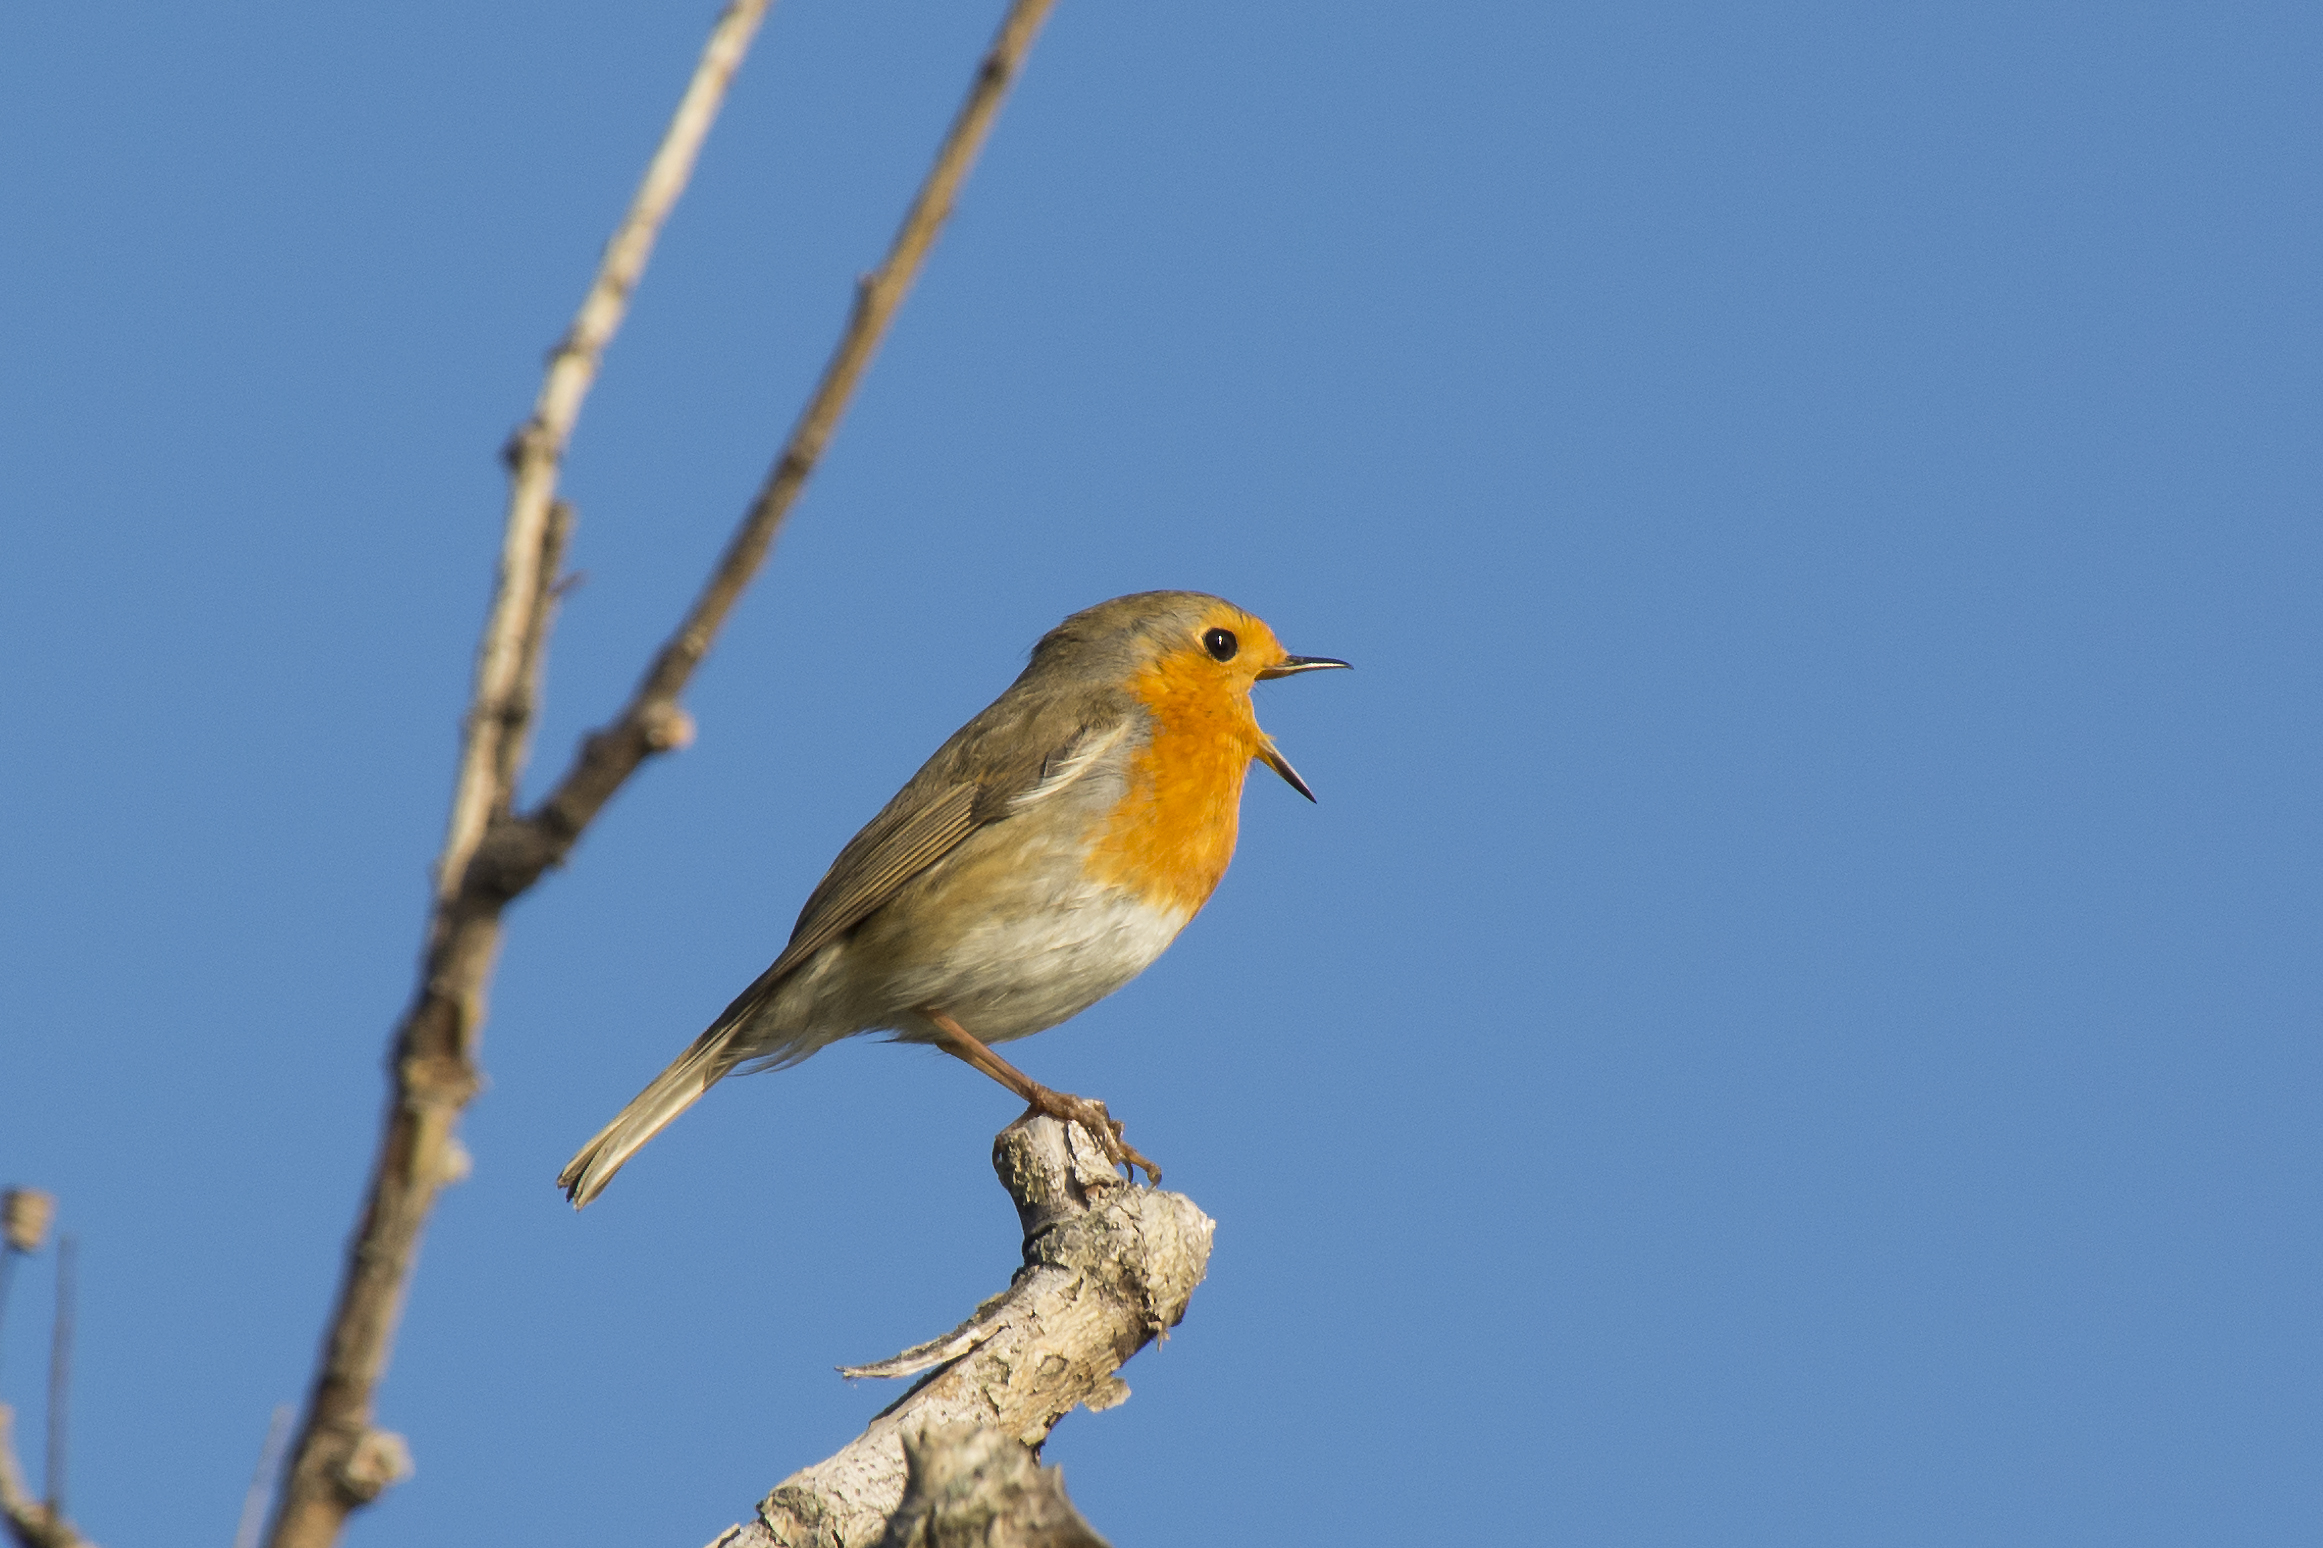 The song of the robin...